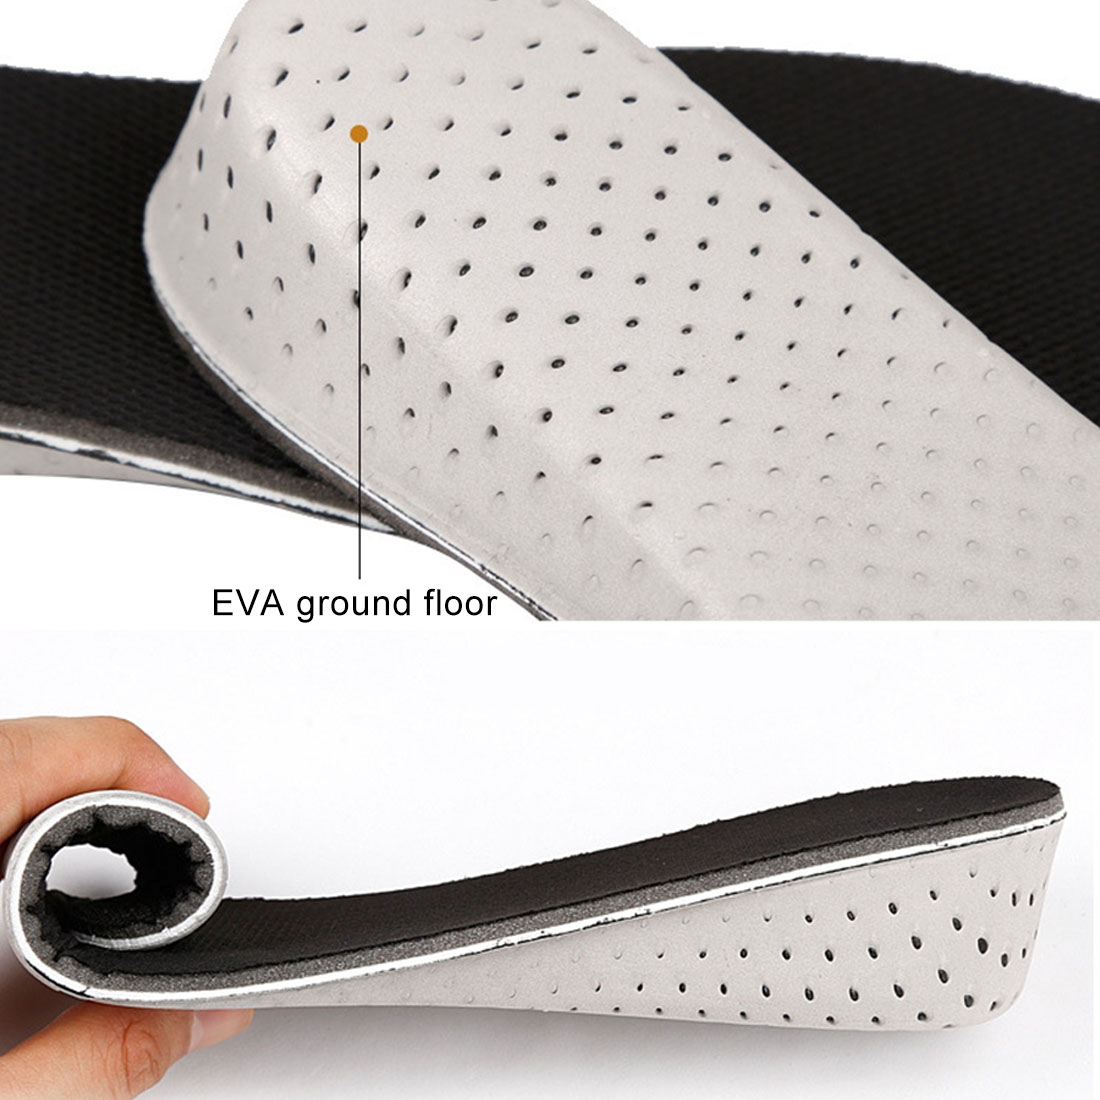 1 Pair EVA Breathable Insert Shoes Height Increase Insoles, Height: 3cm